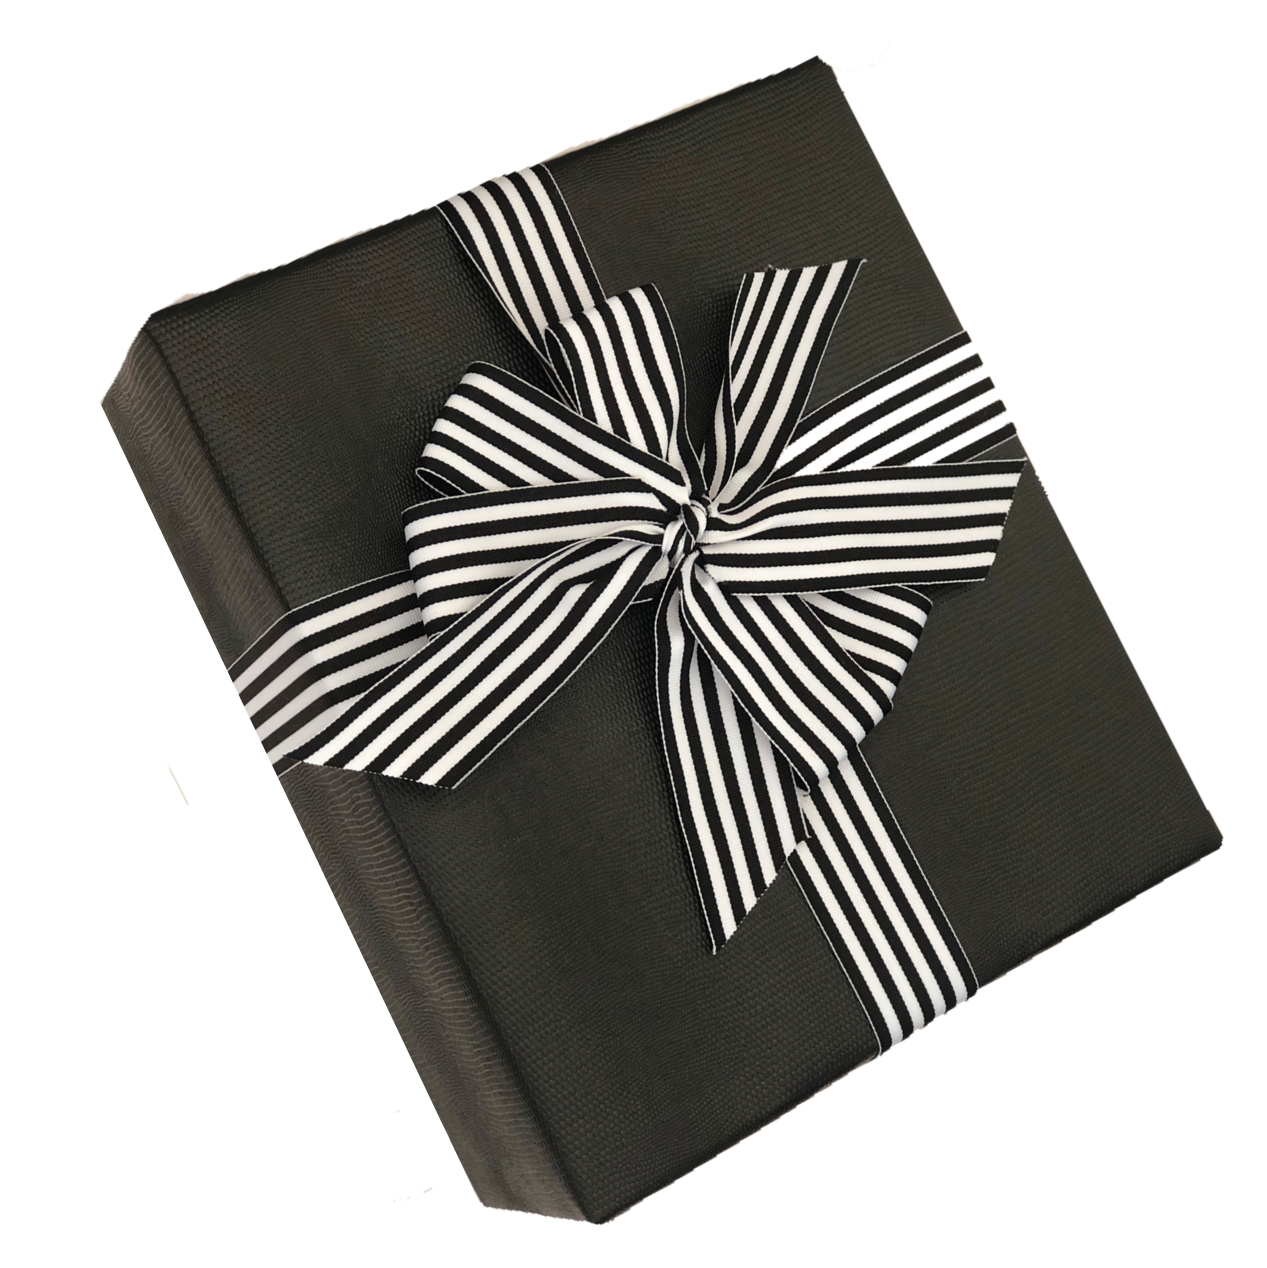 Black Faux Leather Gift Wrap with Black & White Striped Ribbon. Upscale look for weddings, corporate gifts and more.